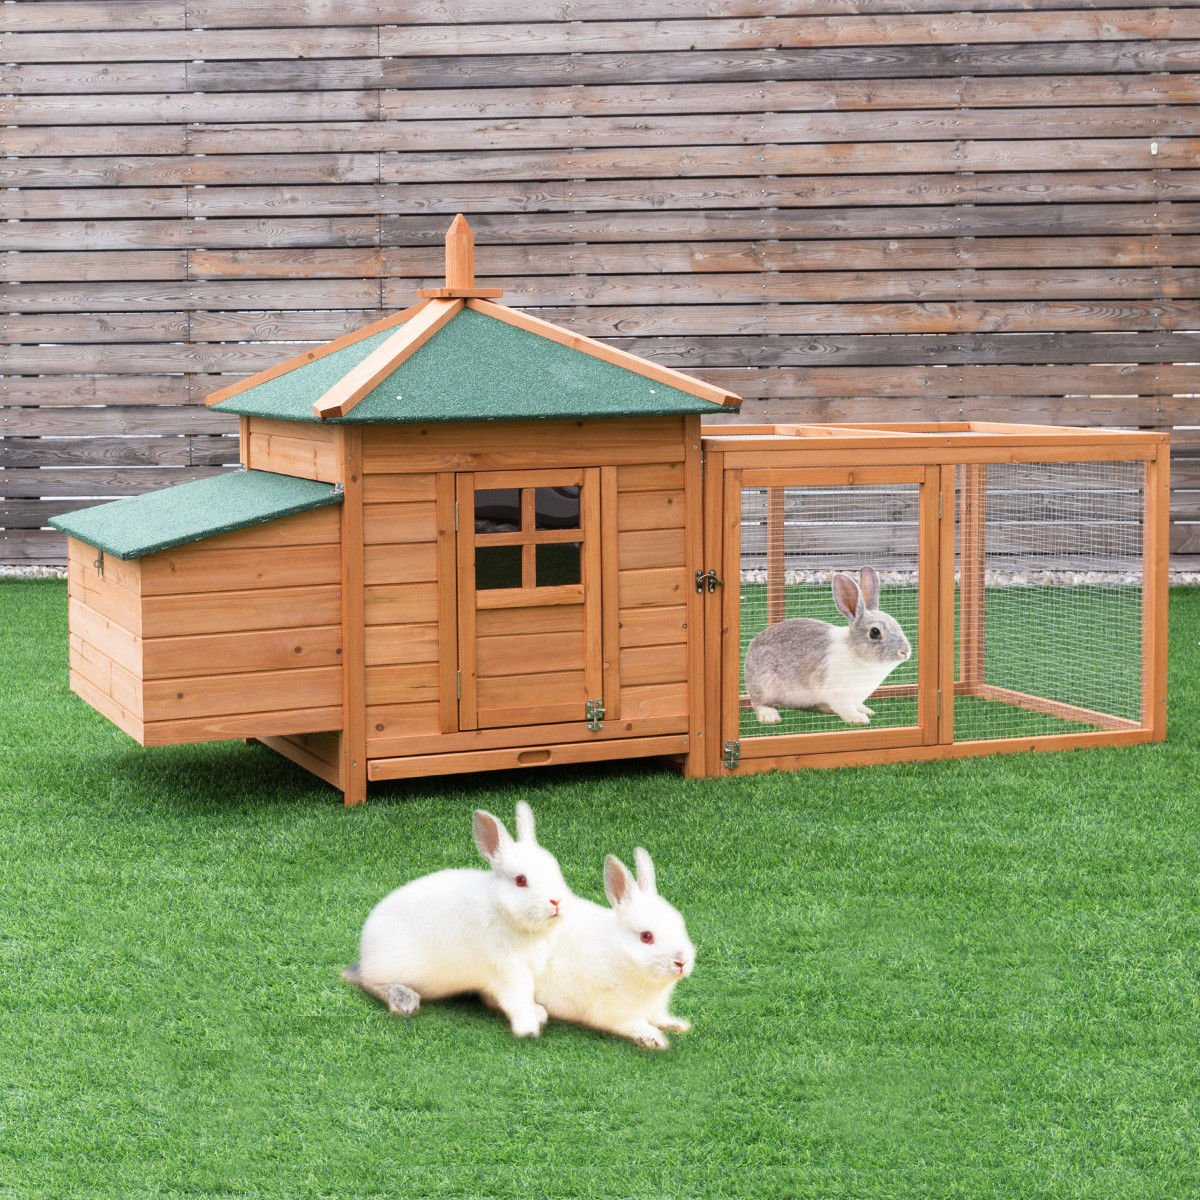 "Tangkula 78"" Chicken Coop Outdoor Garden Backyard Wood Hen House Rabbit Hutch Poultry Small Animal Cage"